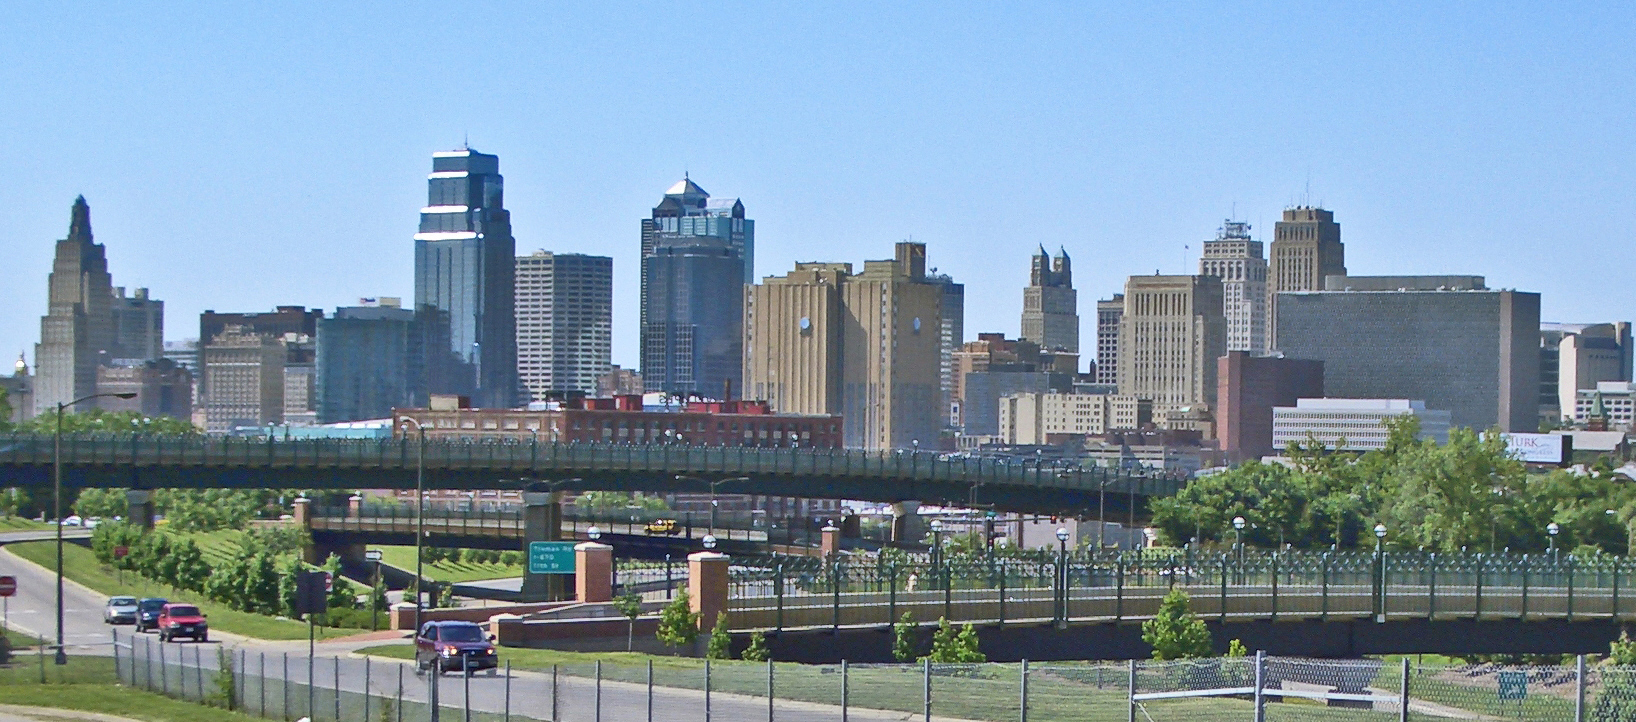 Kansas_City_MO_Skyline_14July2008v.jpg